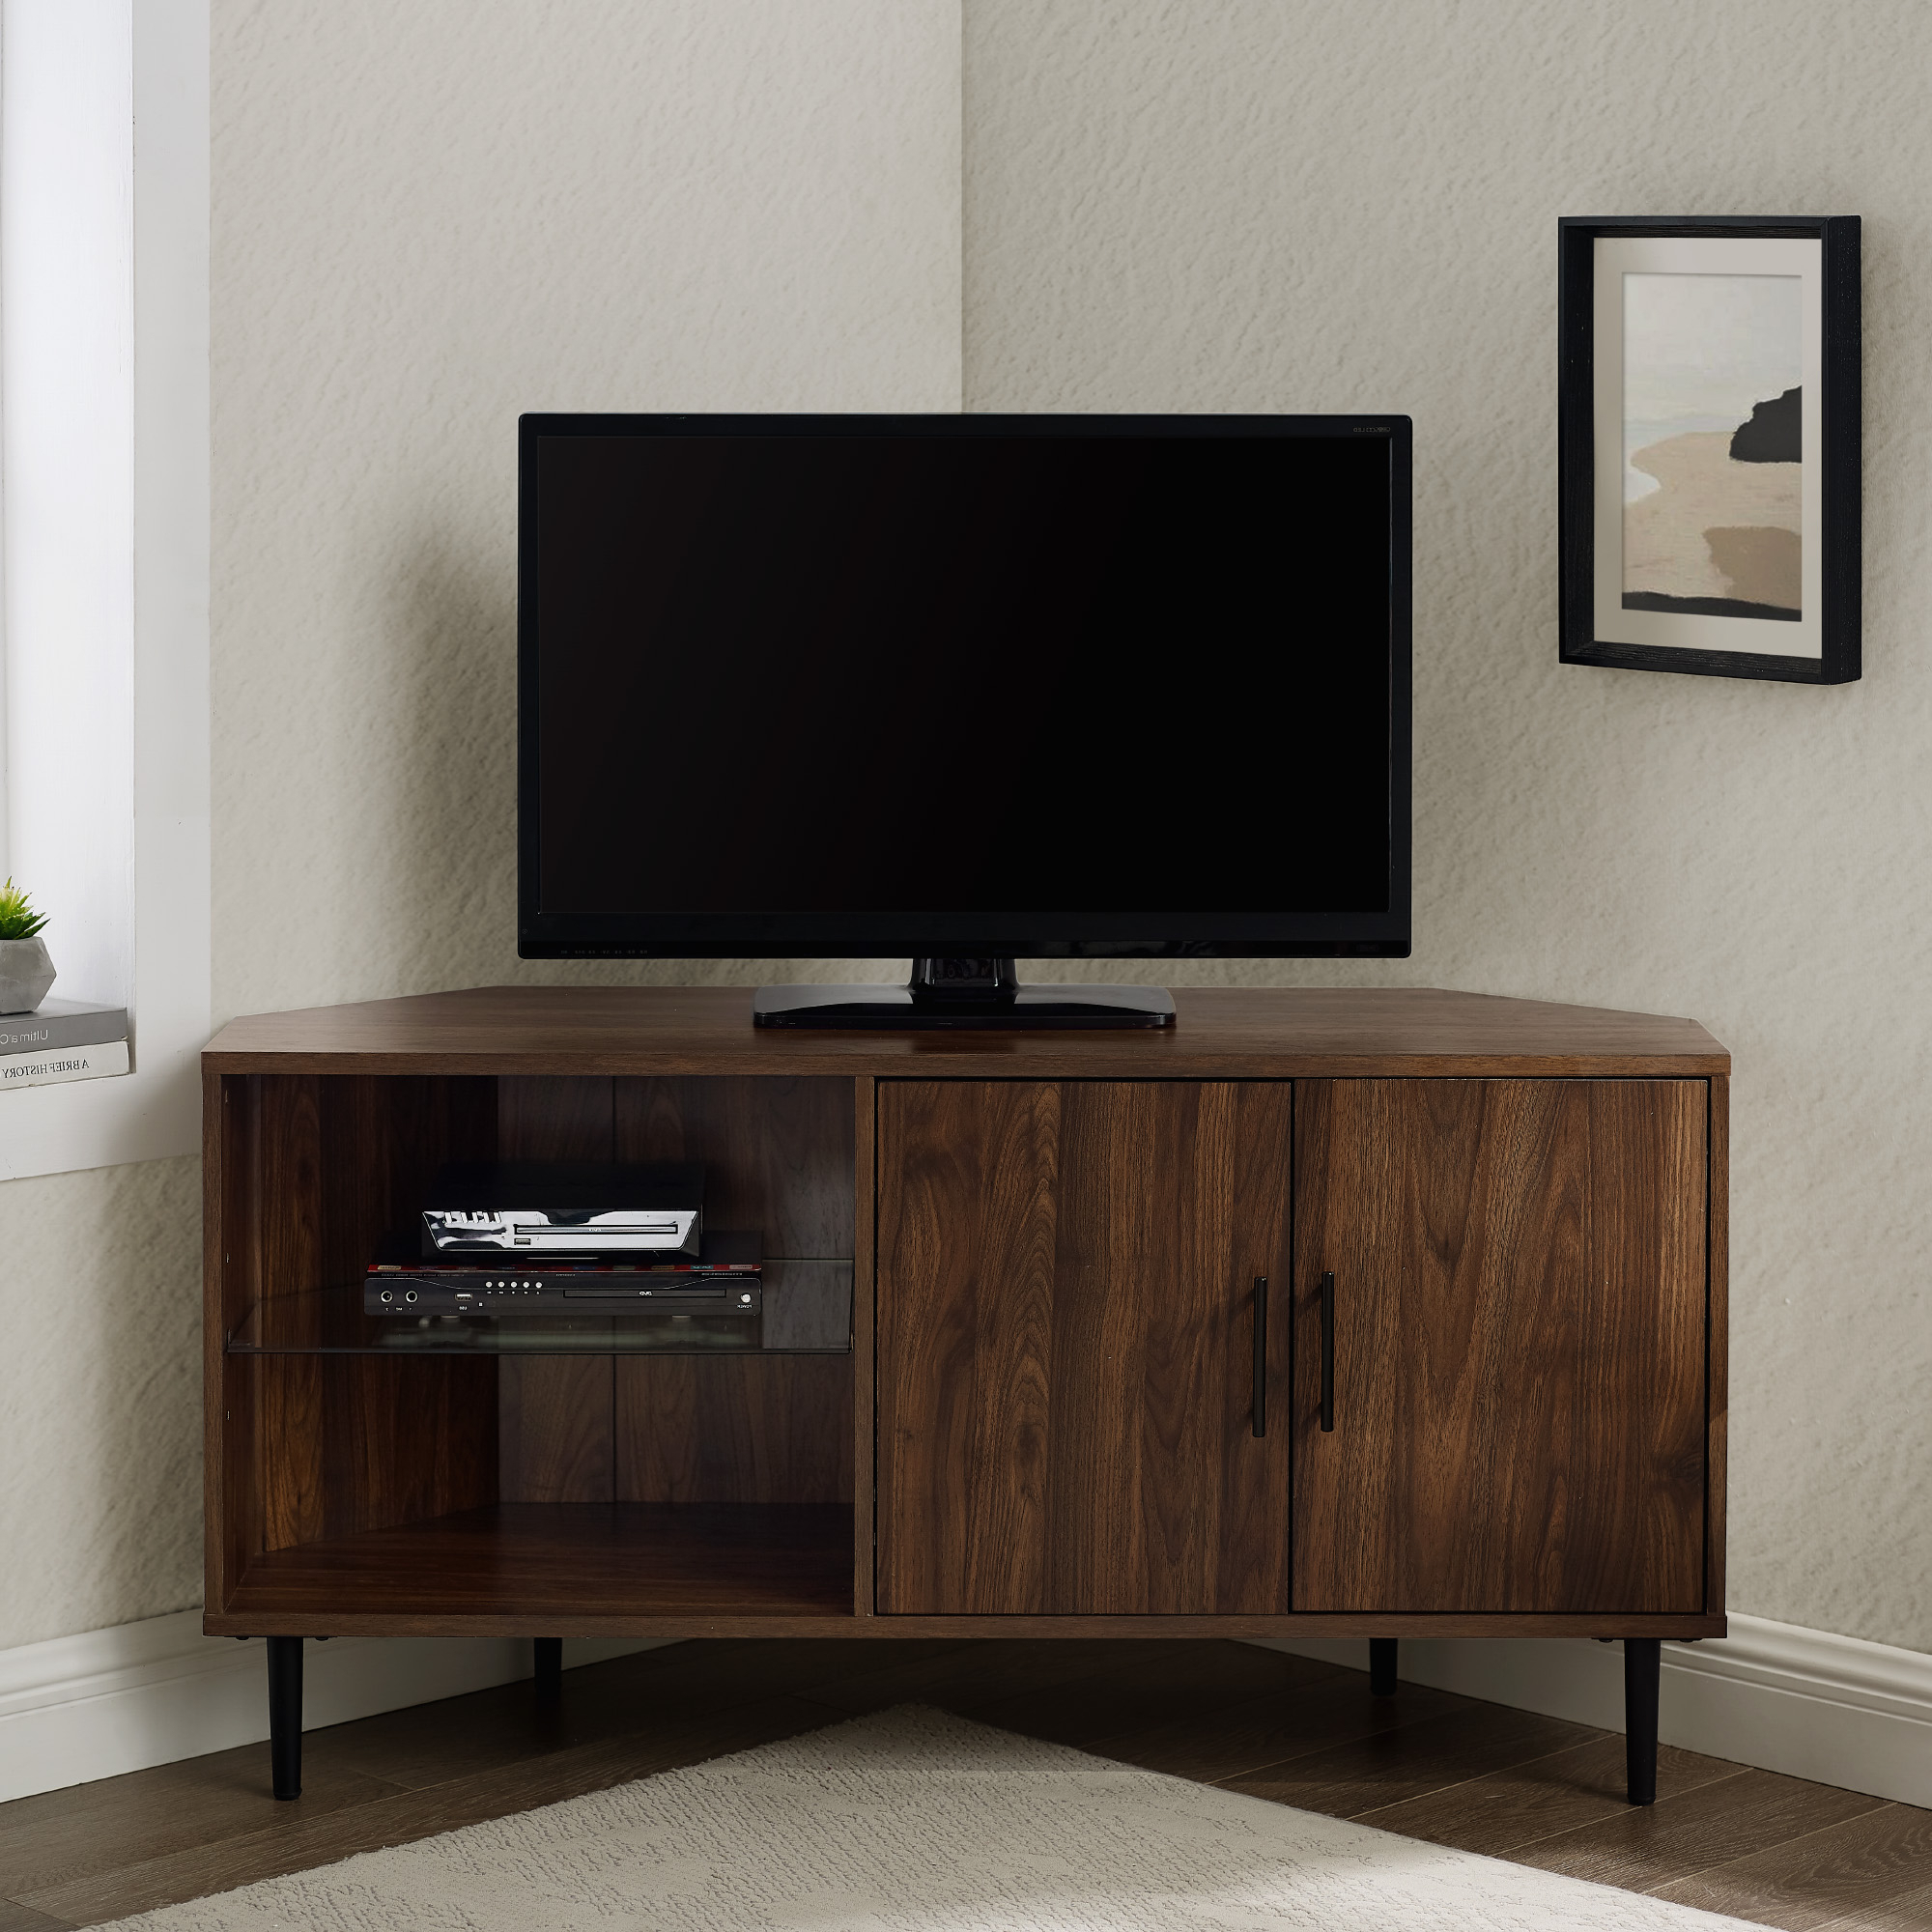 """Manor Park Basie 2 Door Corner Tv Stand For Tvs Up To 55 Throughout Well Known Twila Tv Stands For Tvs Up To 55"""" (View 3 of 25)"""